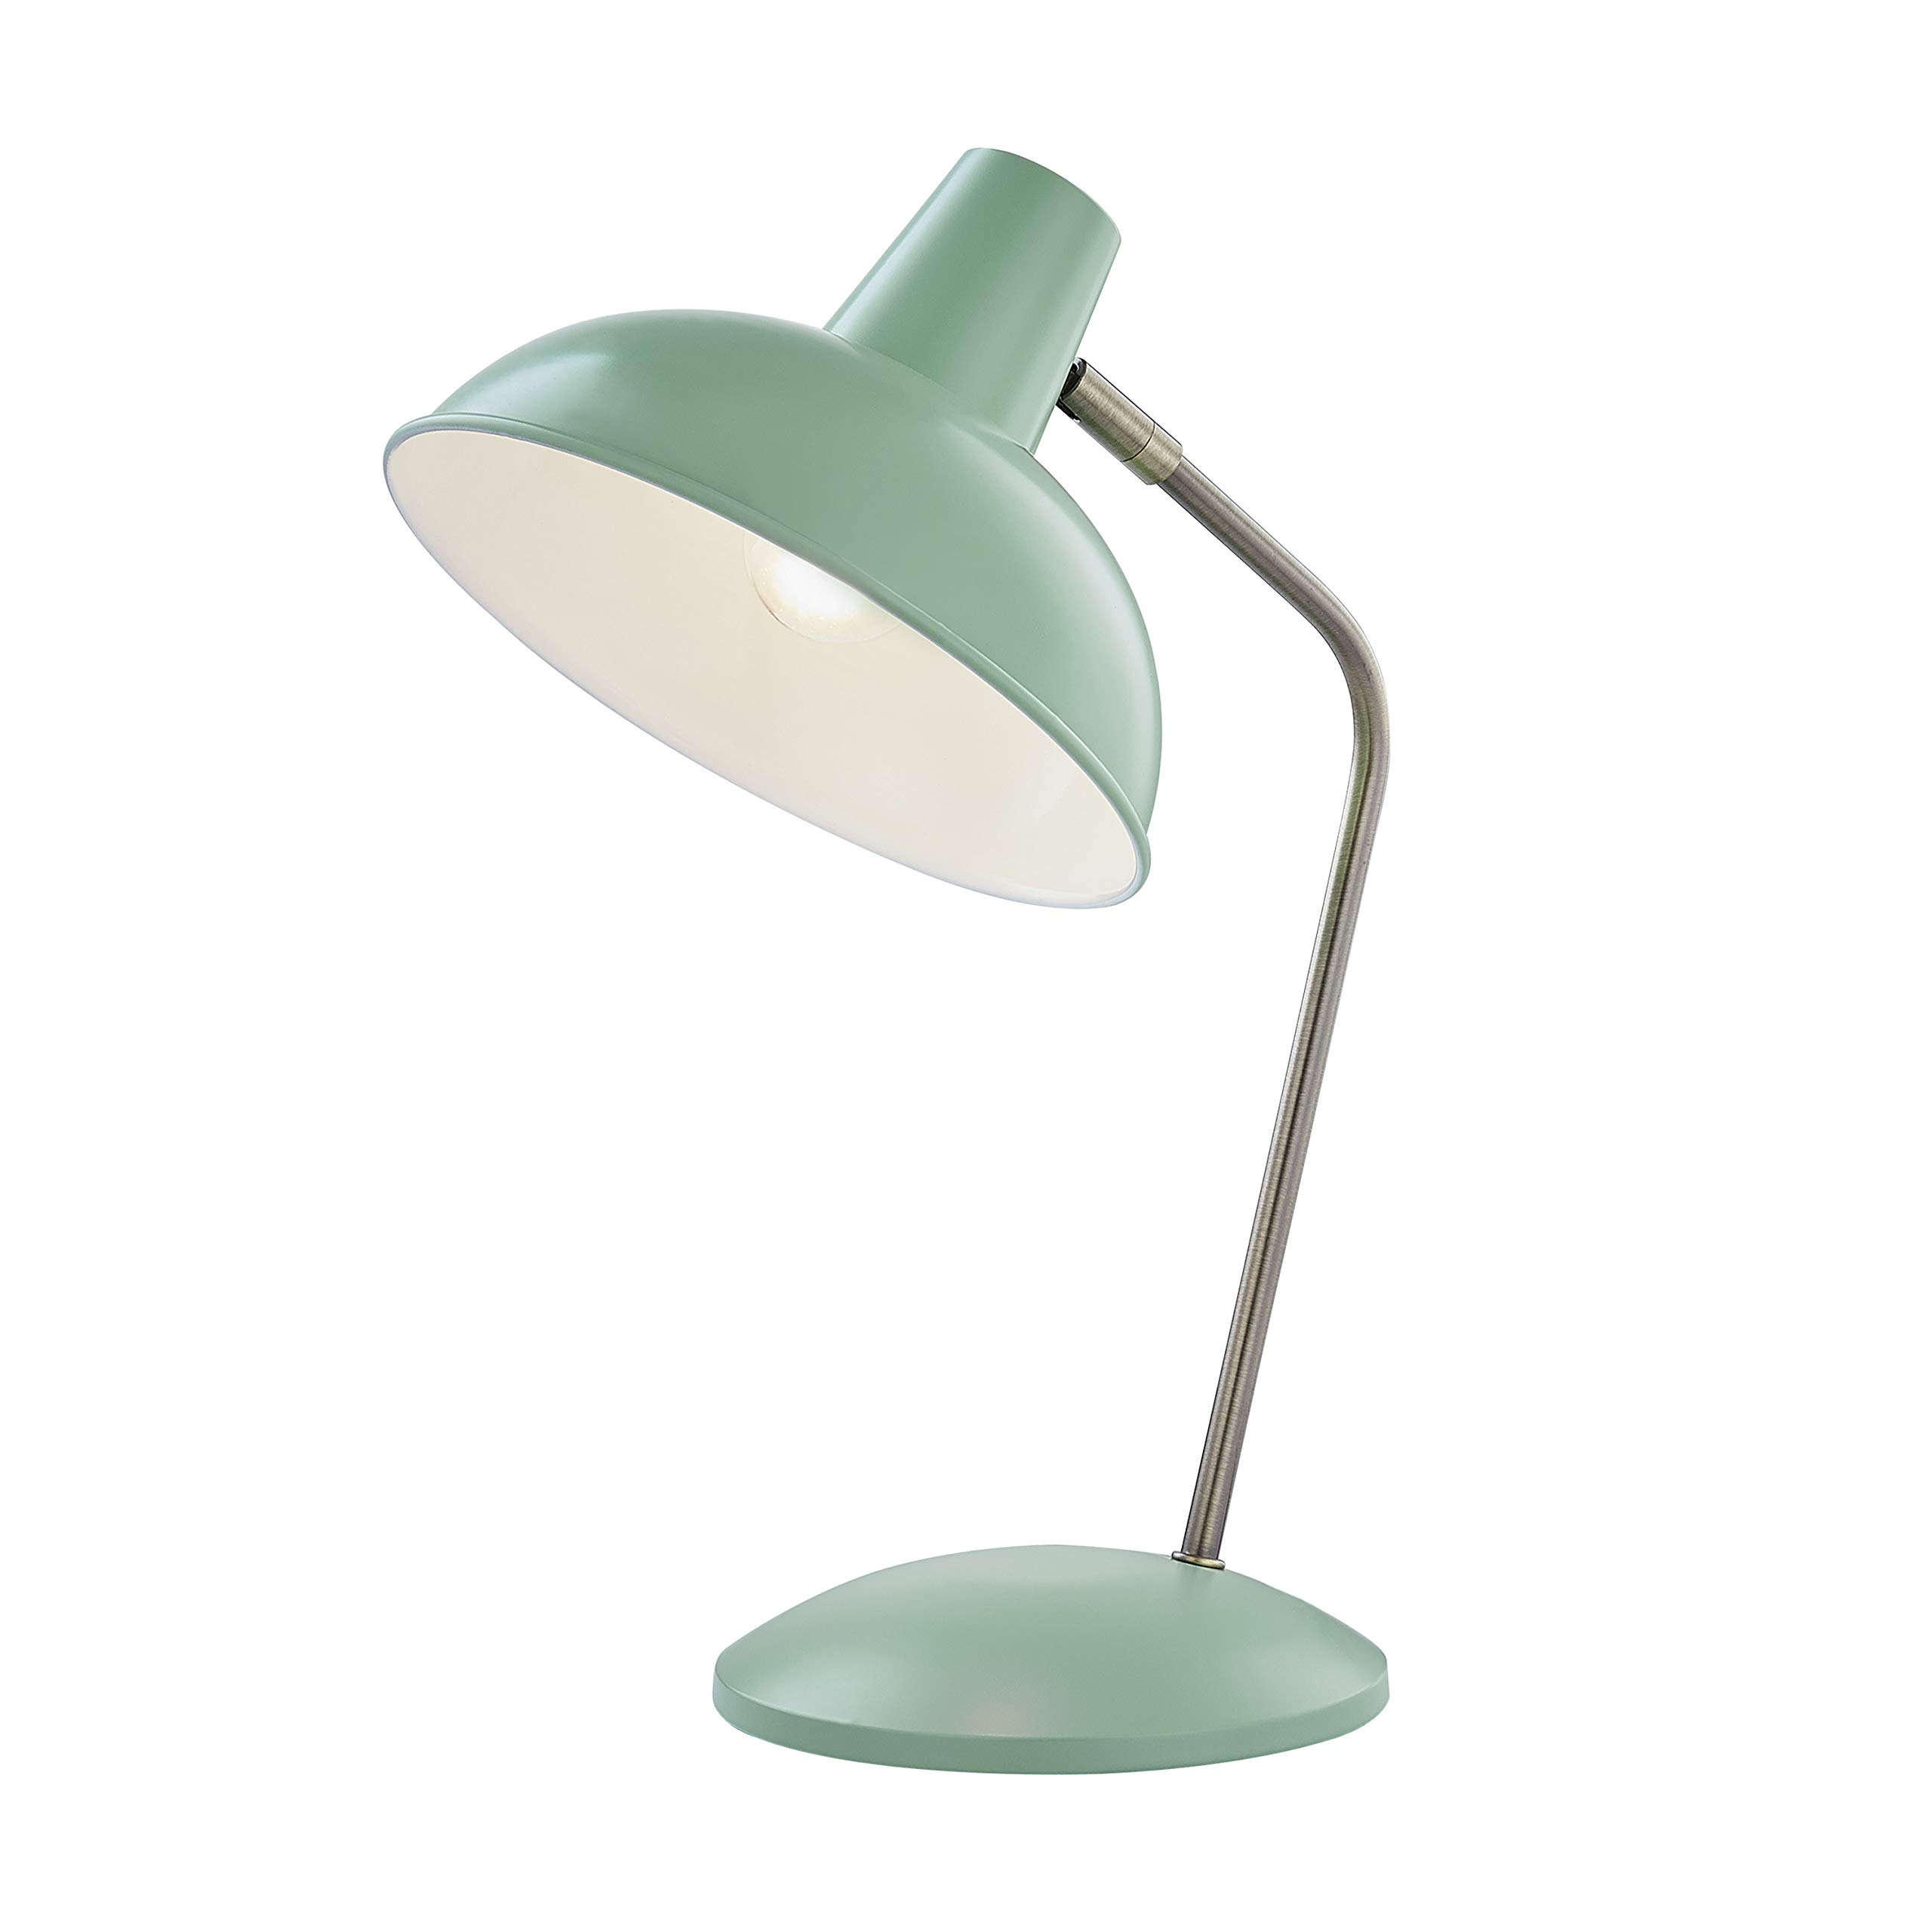 Light Society LS-T261-MG Hylight Mint Green Retro Desk Lamp with Antique Brass Details, Mid Century Modern Vintage Style